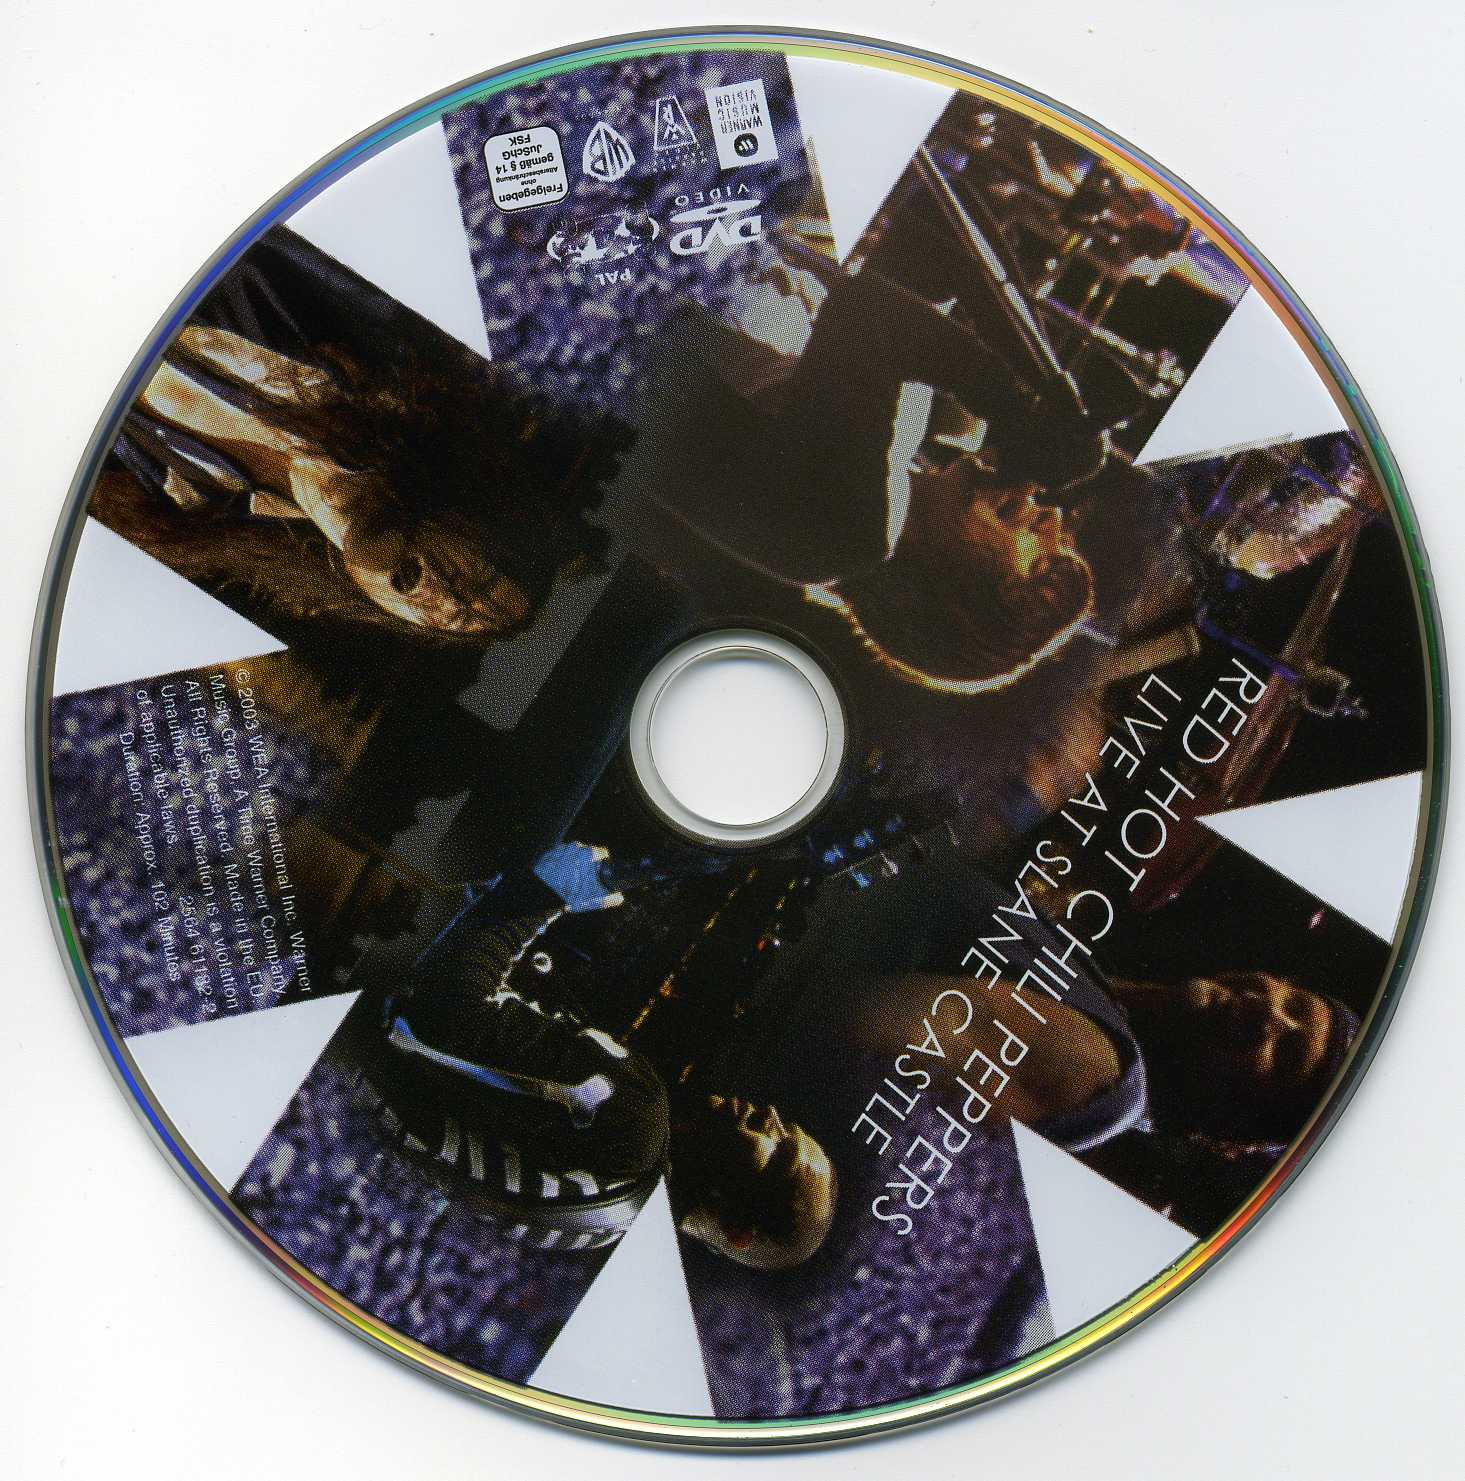 red hot chili peppers live at slane castle cd